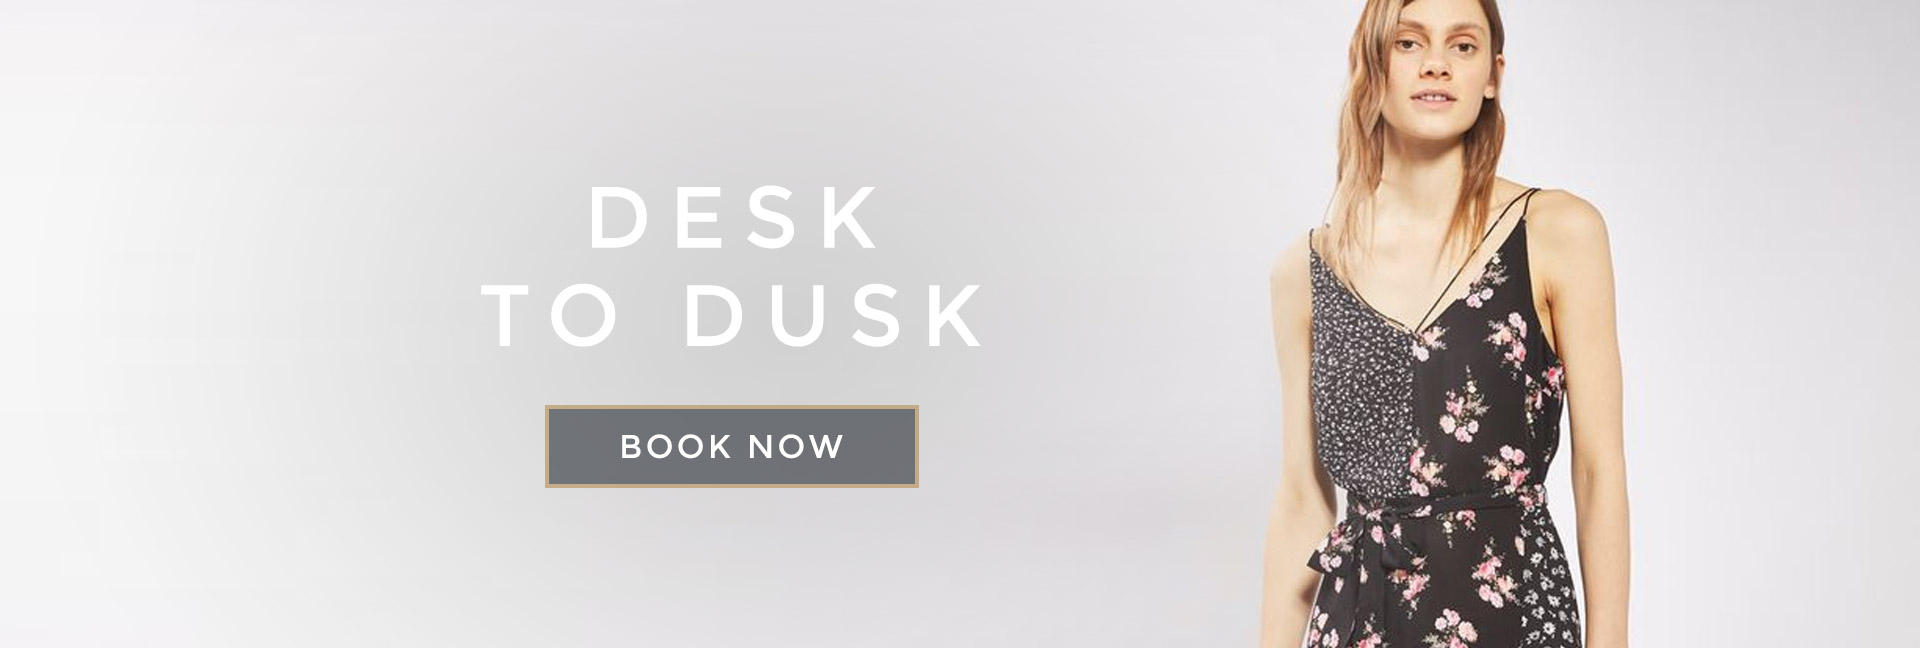 Desk to Dusk at All Bar One Millennium Square Leeds - Book your table